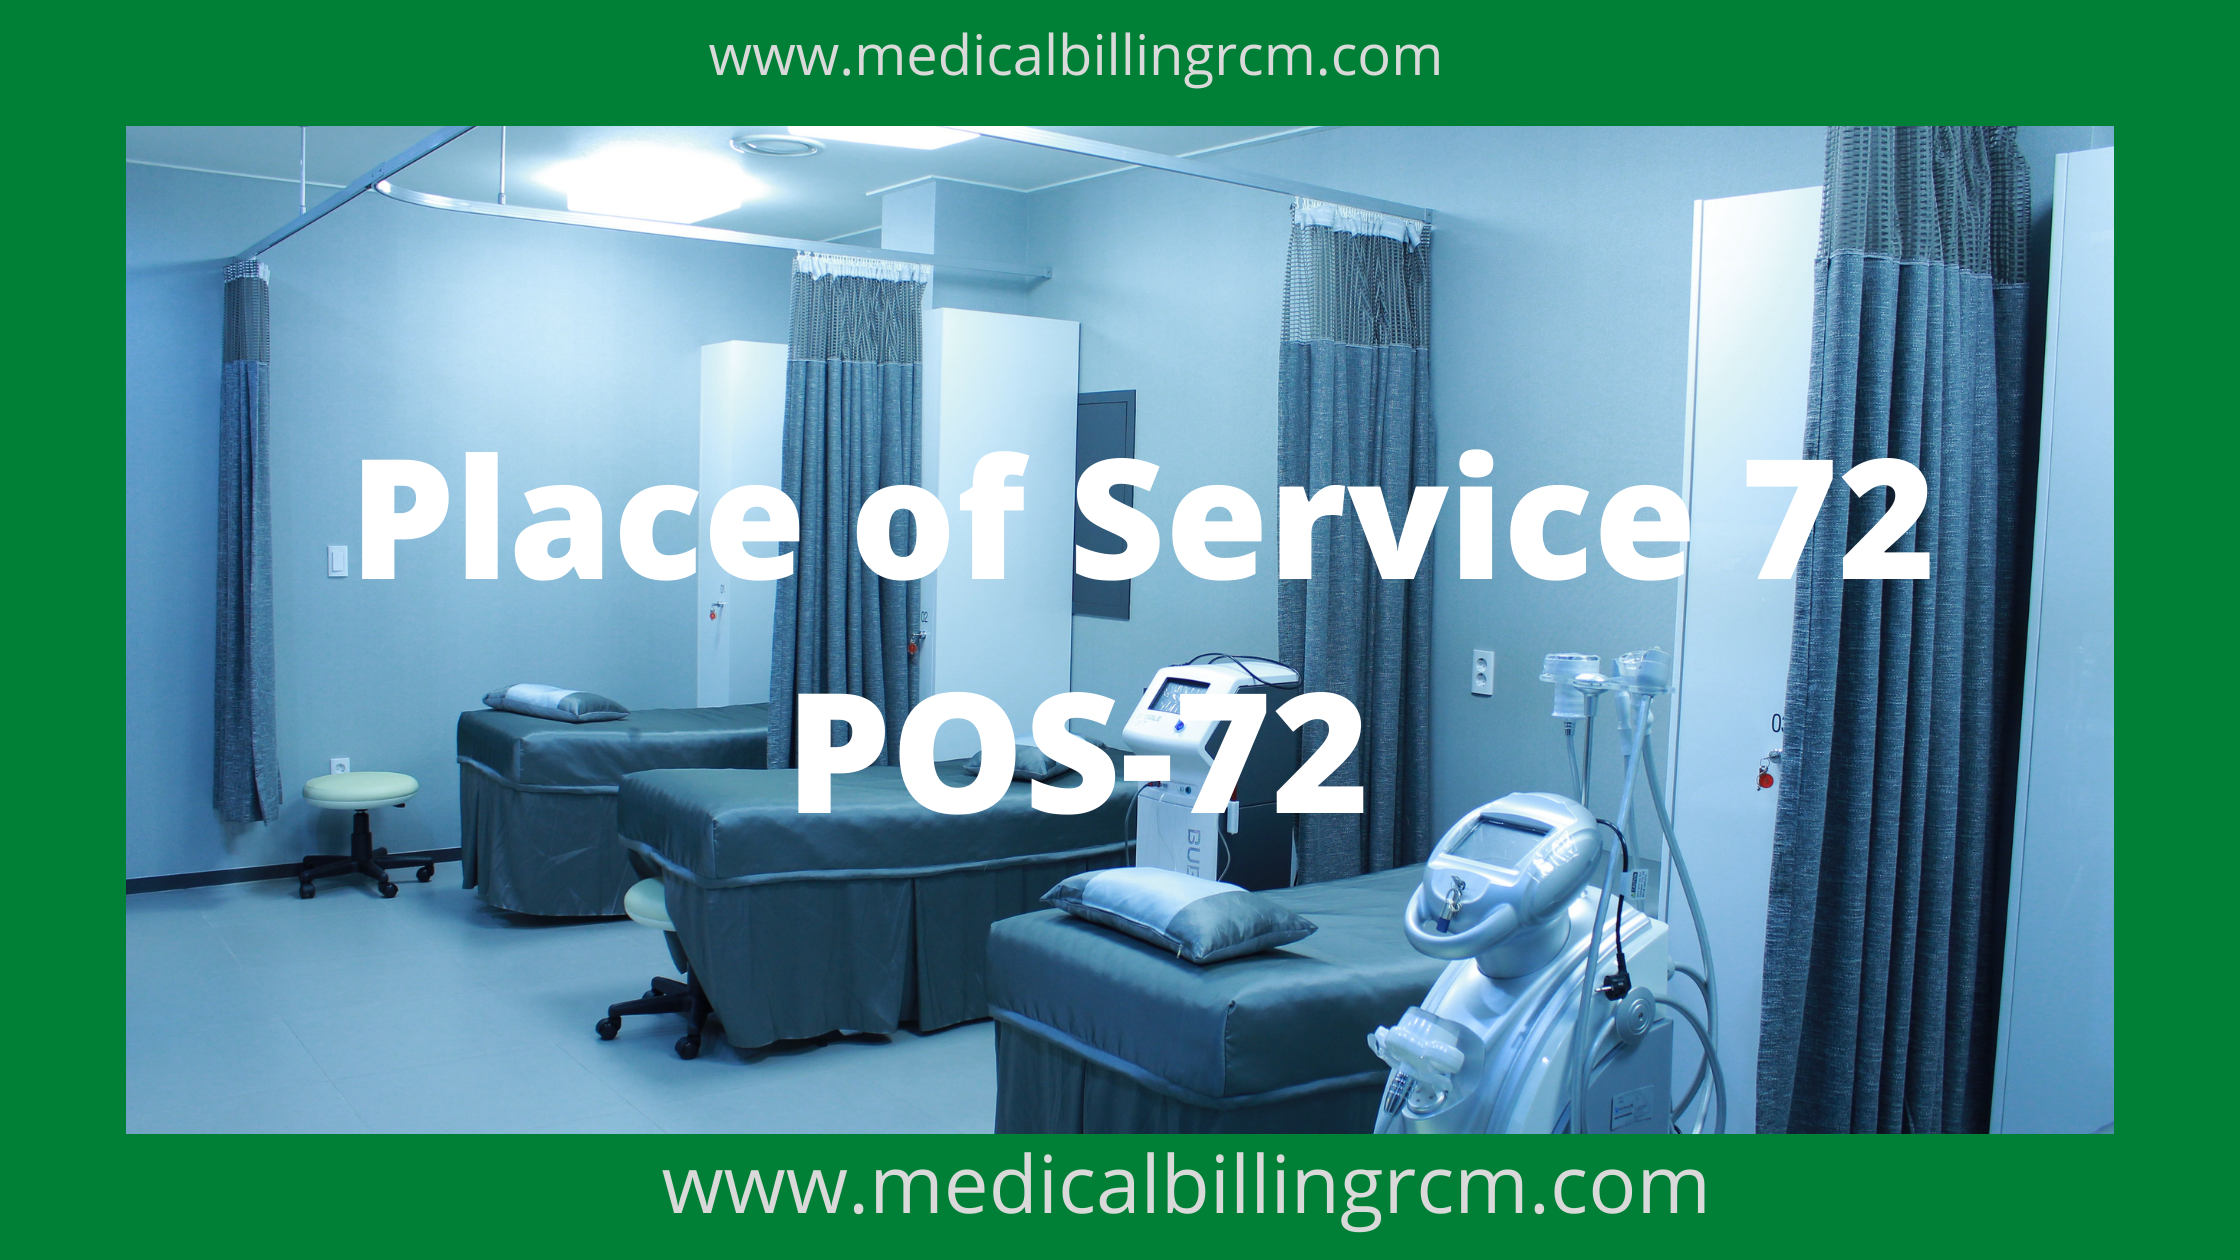 POS 72 in medical billing and coding definition